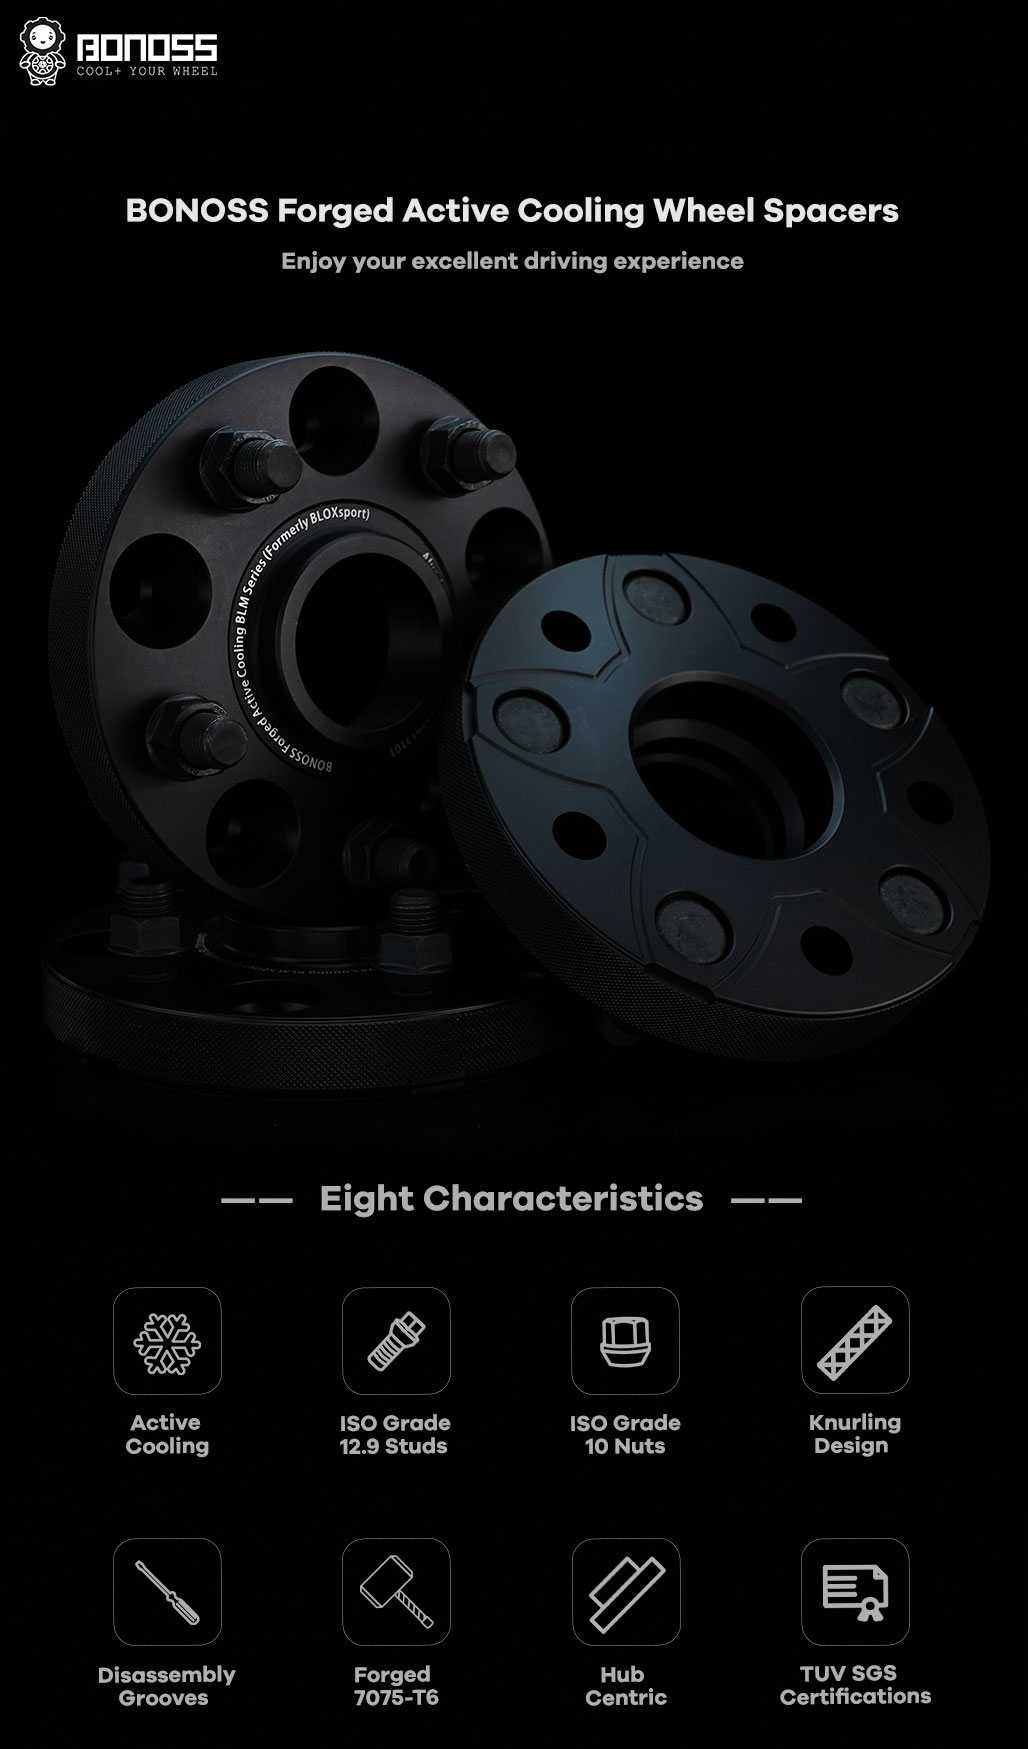 BONOSS Forged Active Cooling Hubcentric Wheel Spacers 5 Lug Wheel Adapters Wheel ET Spacers AL7075-T6